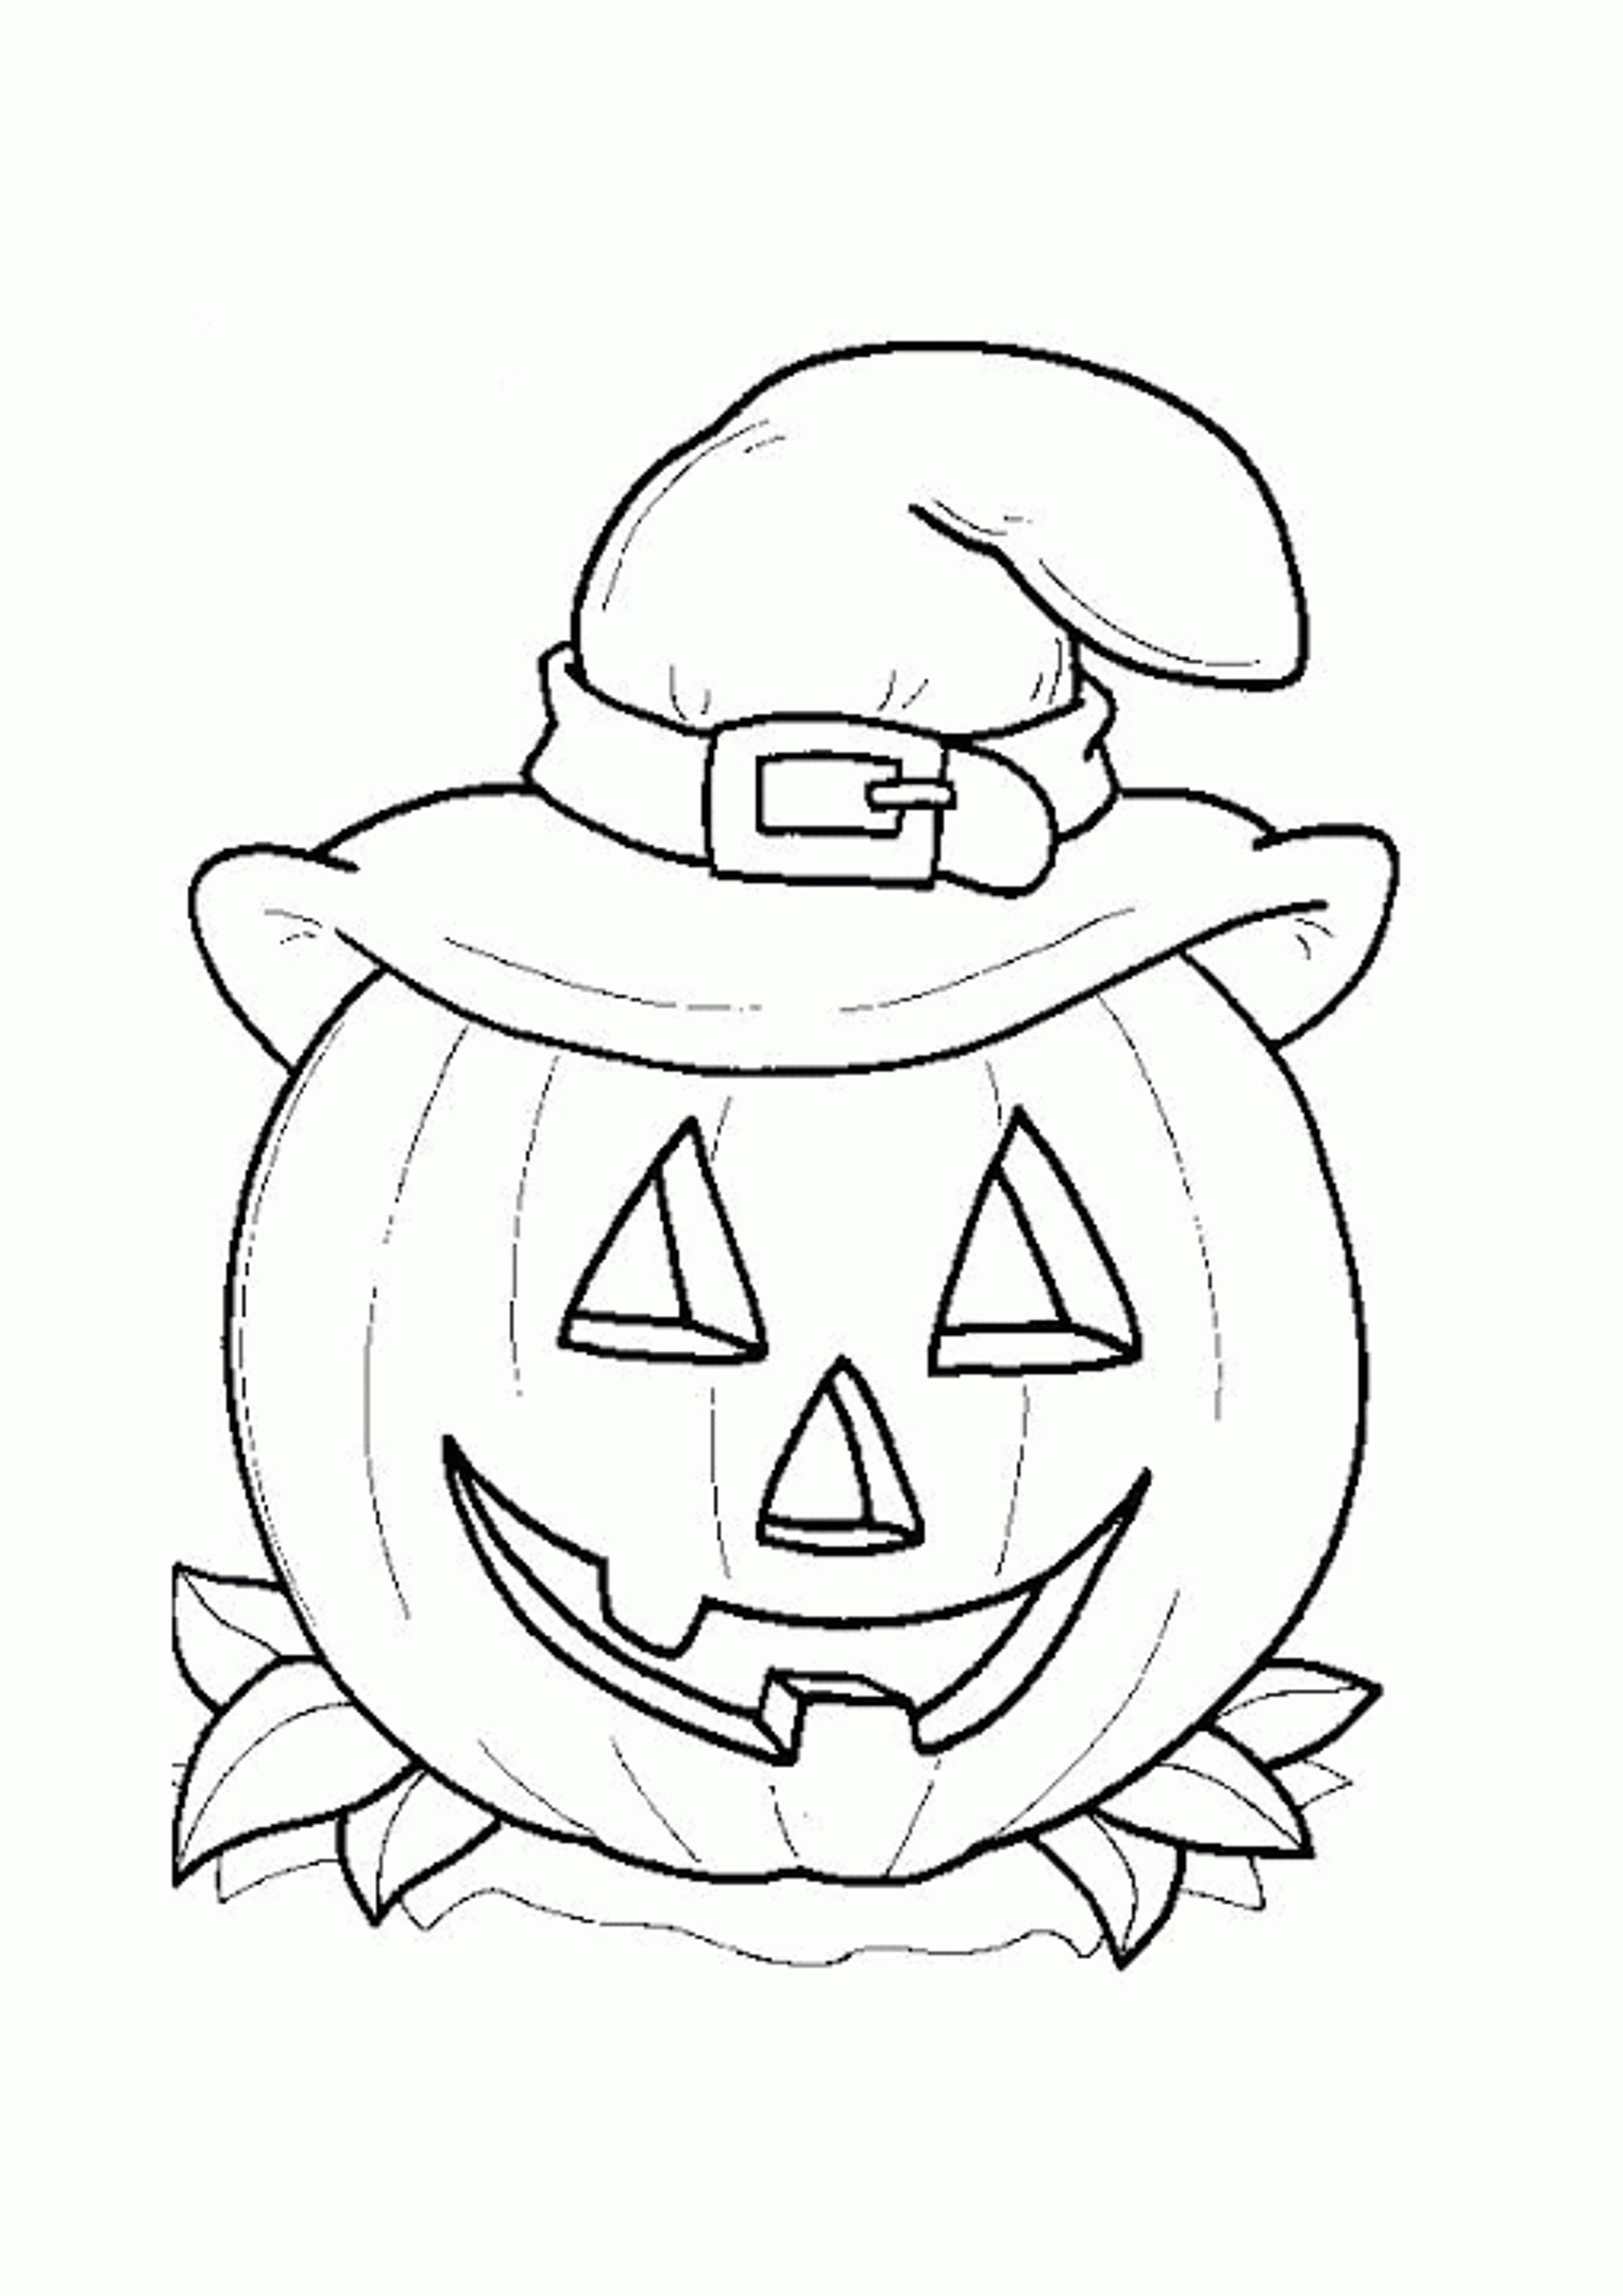 Pumpkins Coloring Pages - Yahoo Image Search Results | halw | Pinterest